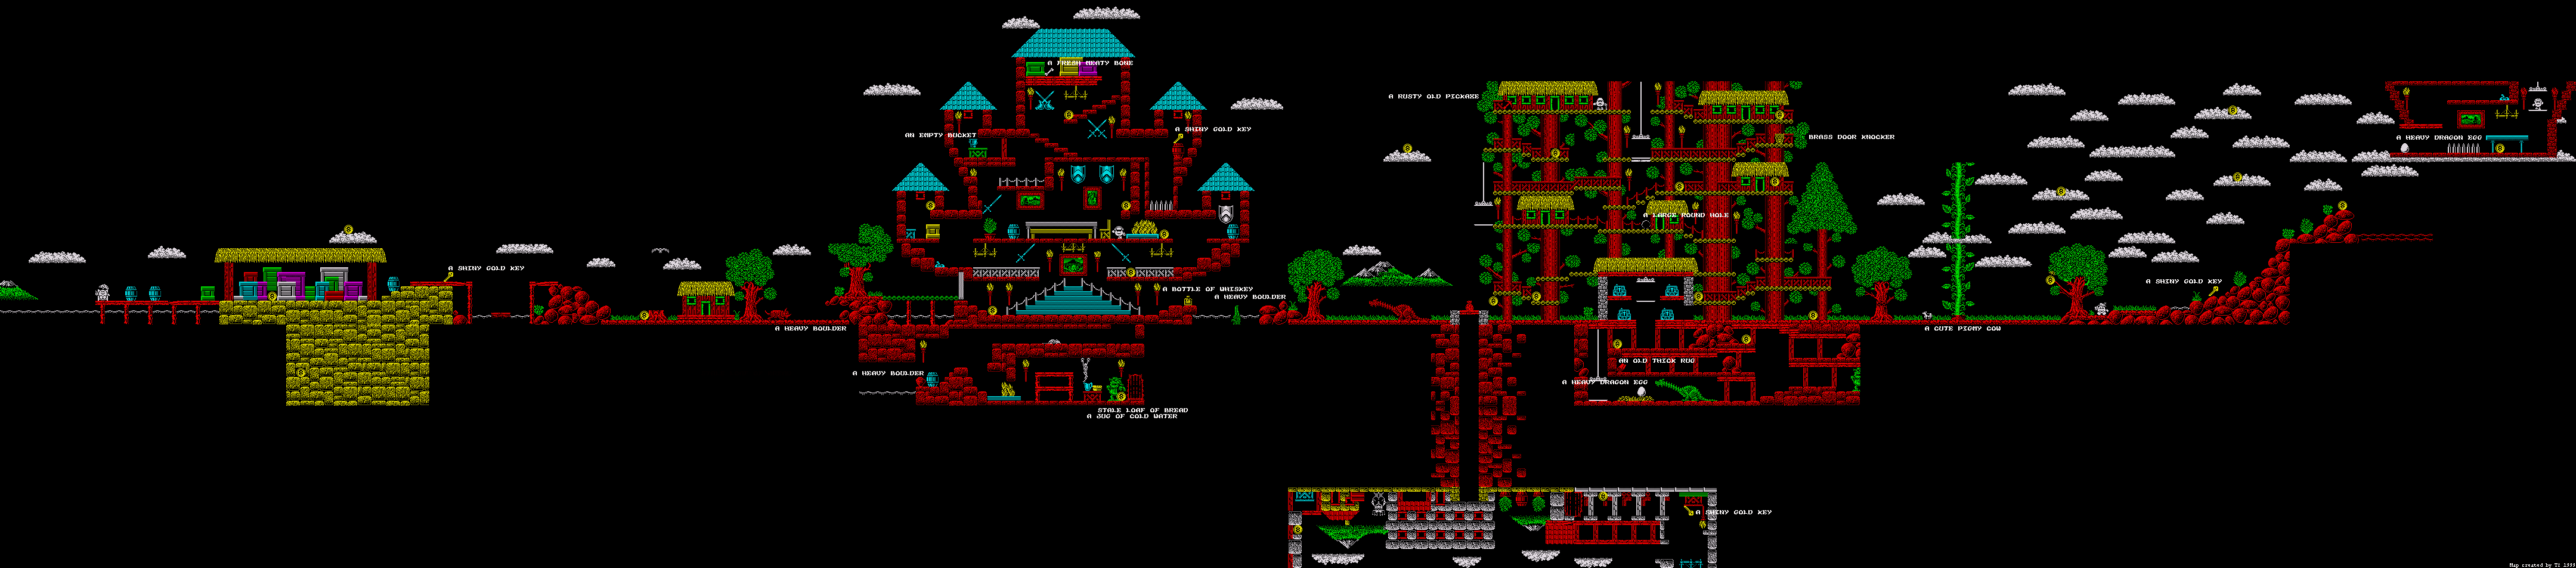 Fantasy World Dizzy Map | ZX Spectrum Games on